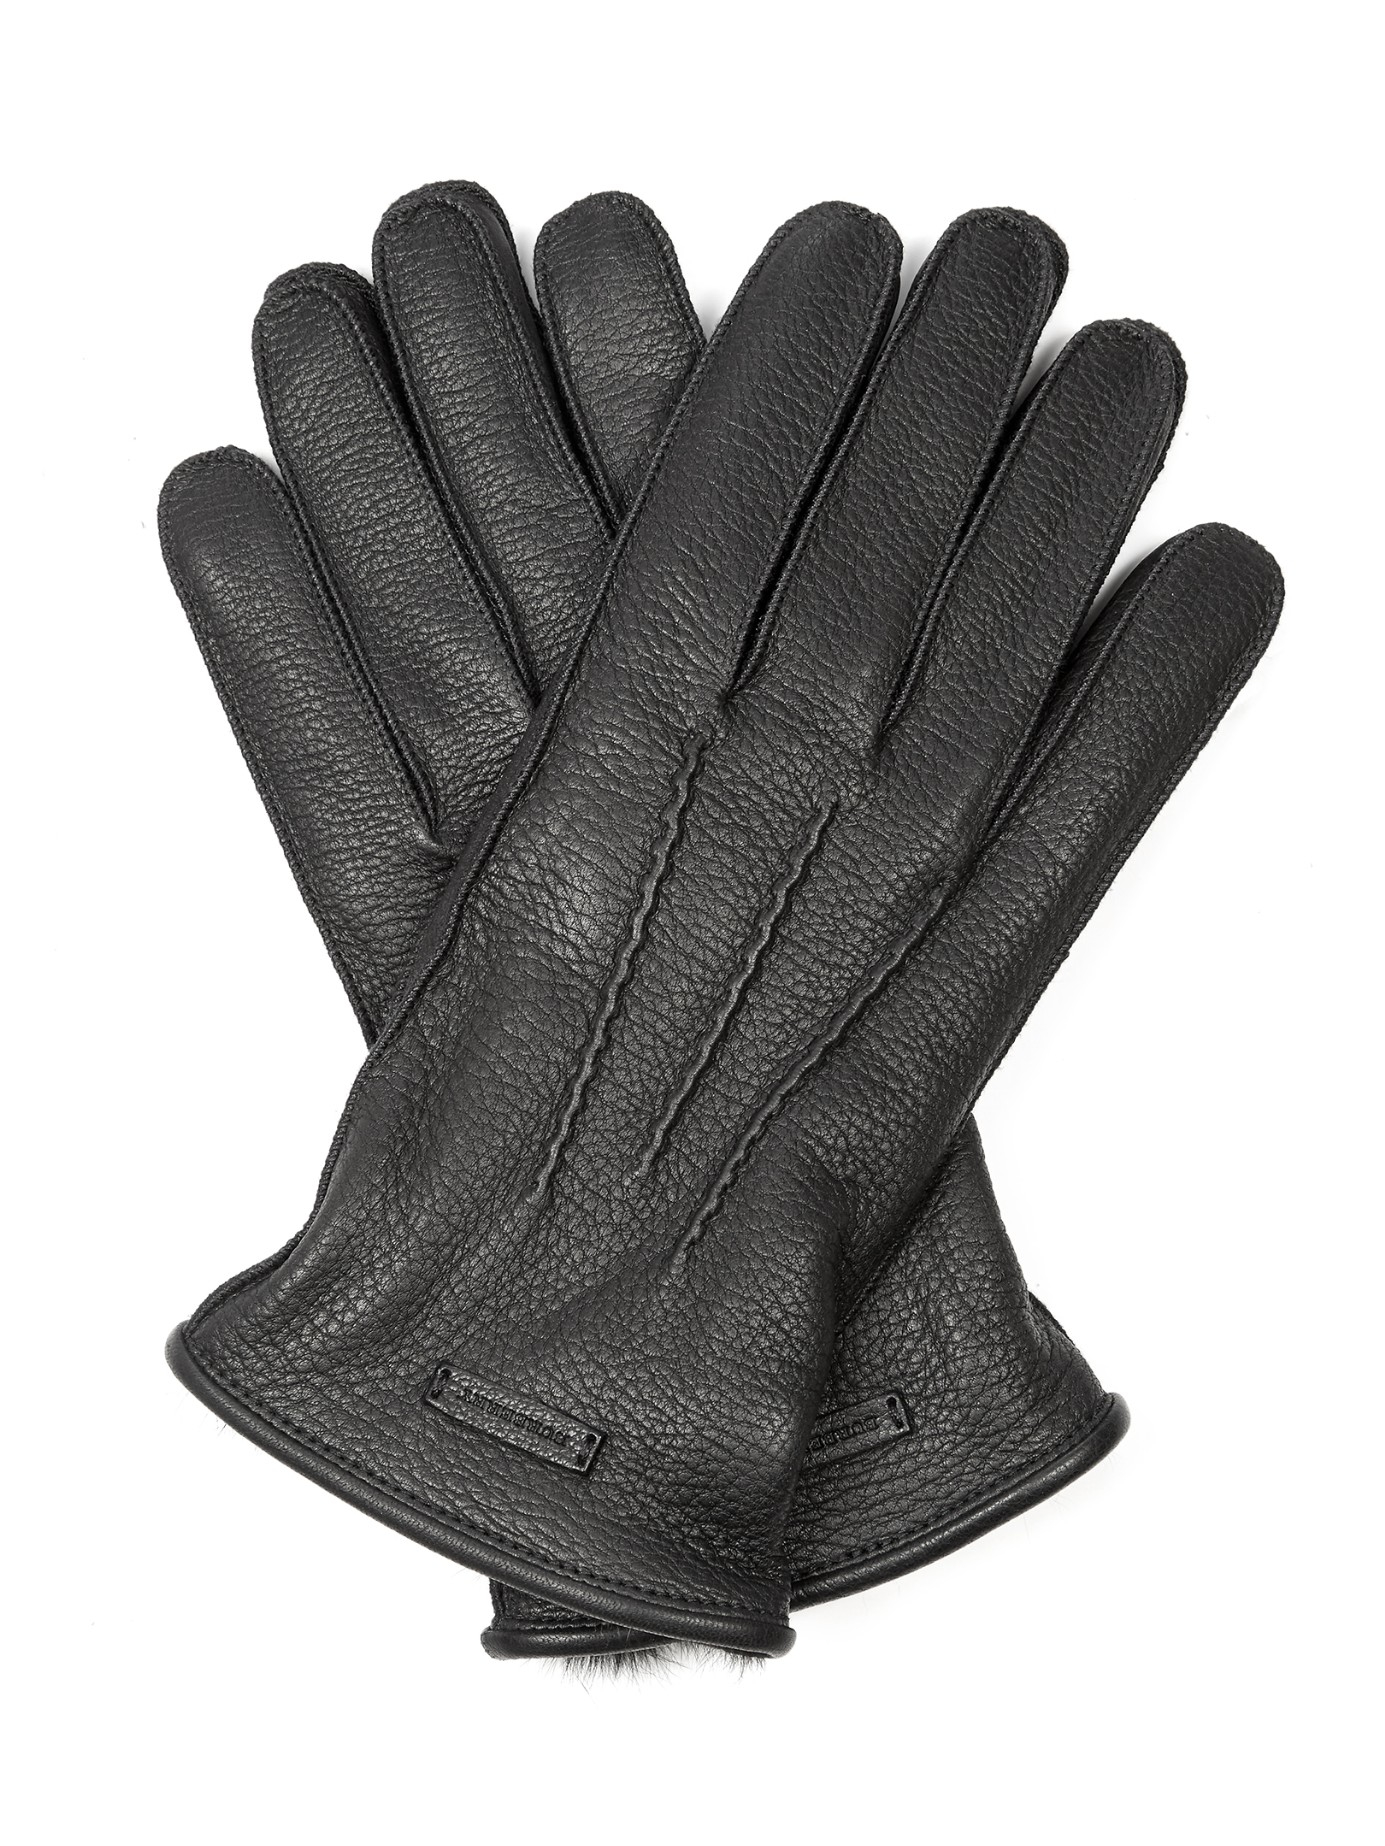 Mens leather gloves fur inside - Gallery Previously Sold At Matchesfashion Com Men S Leather Gloves